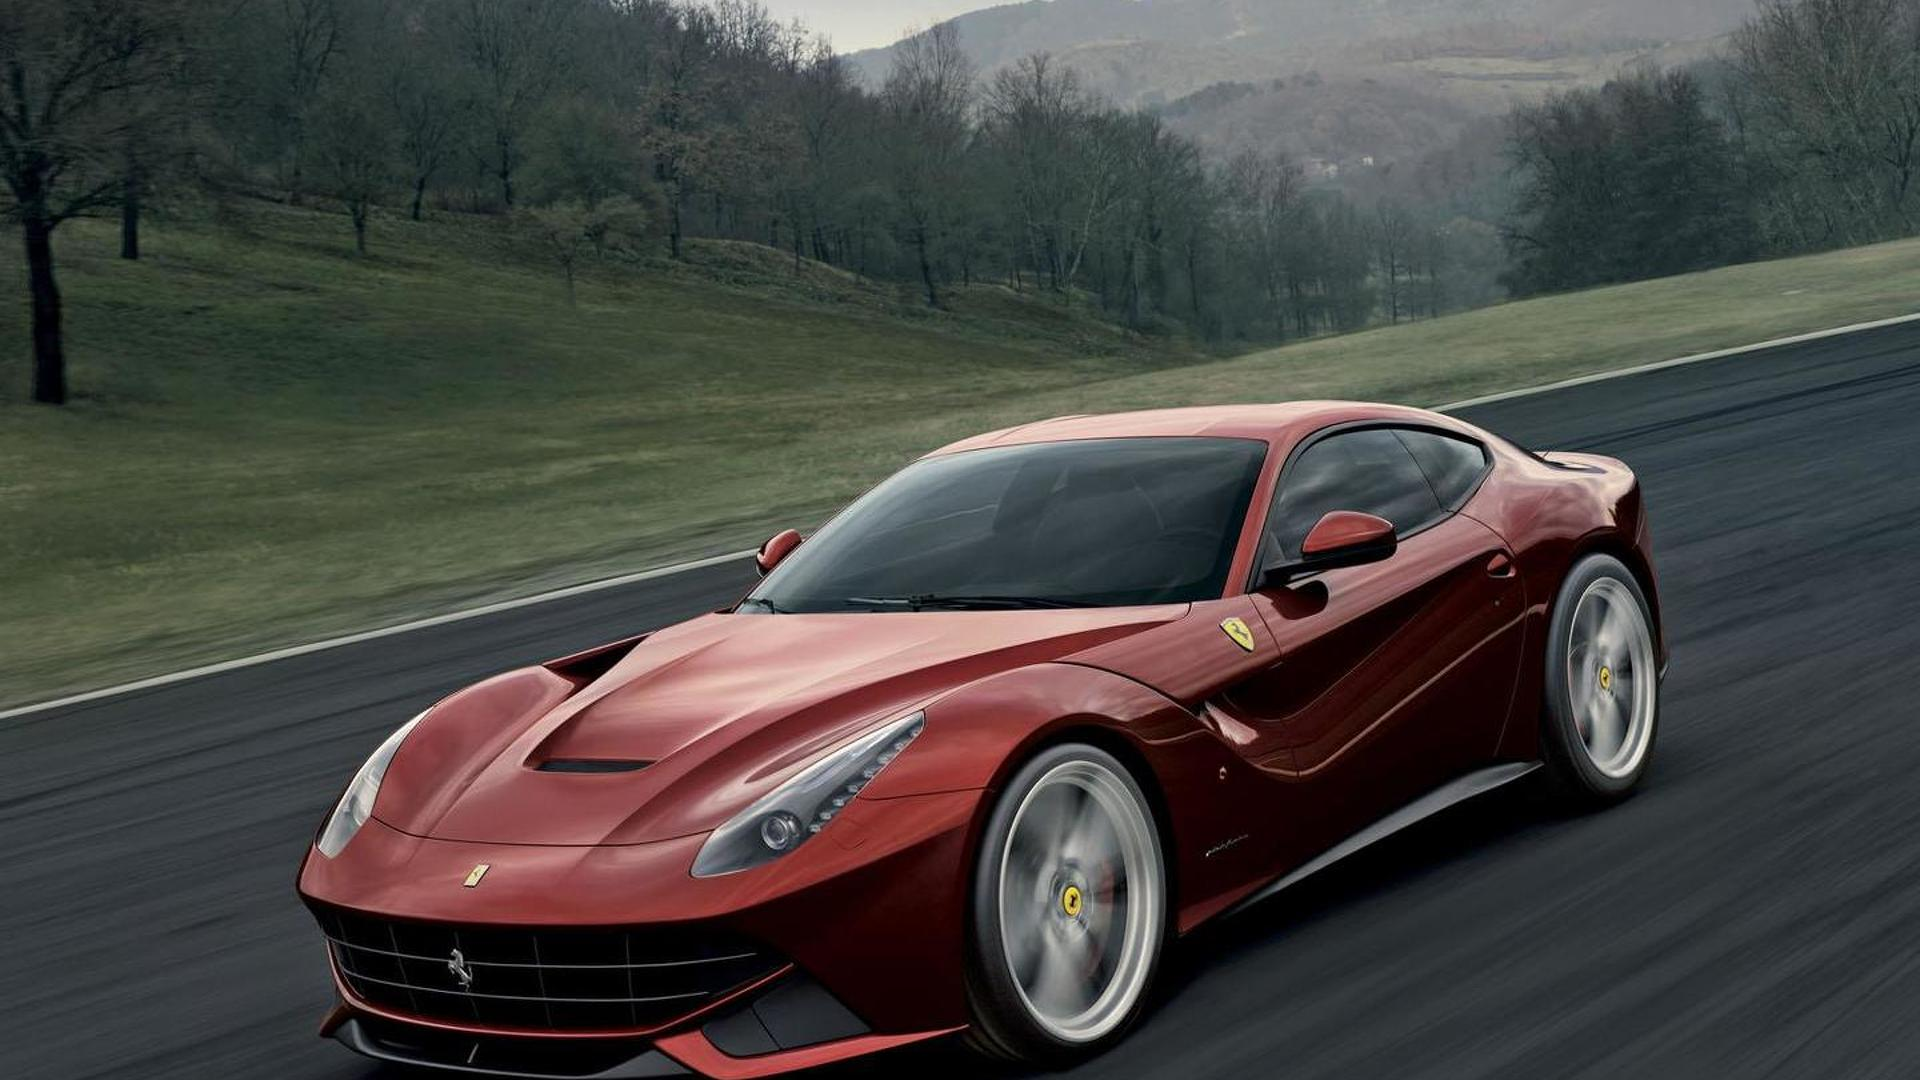 Ferrari F12 Berlinetta pricing reportedly starts at €274,000 in Italy